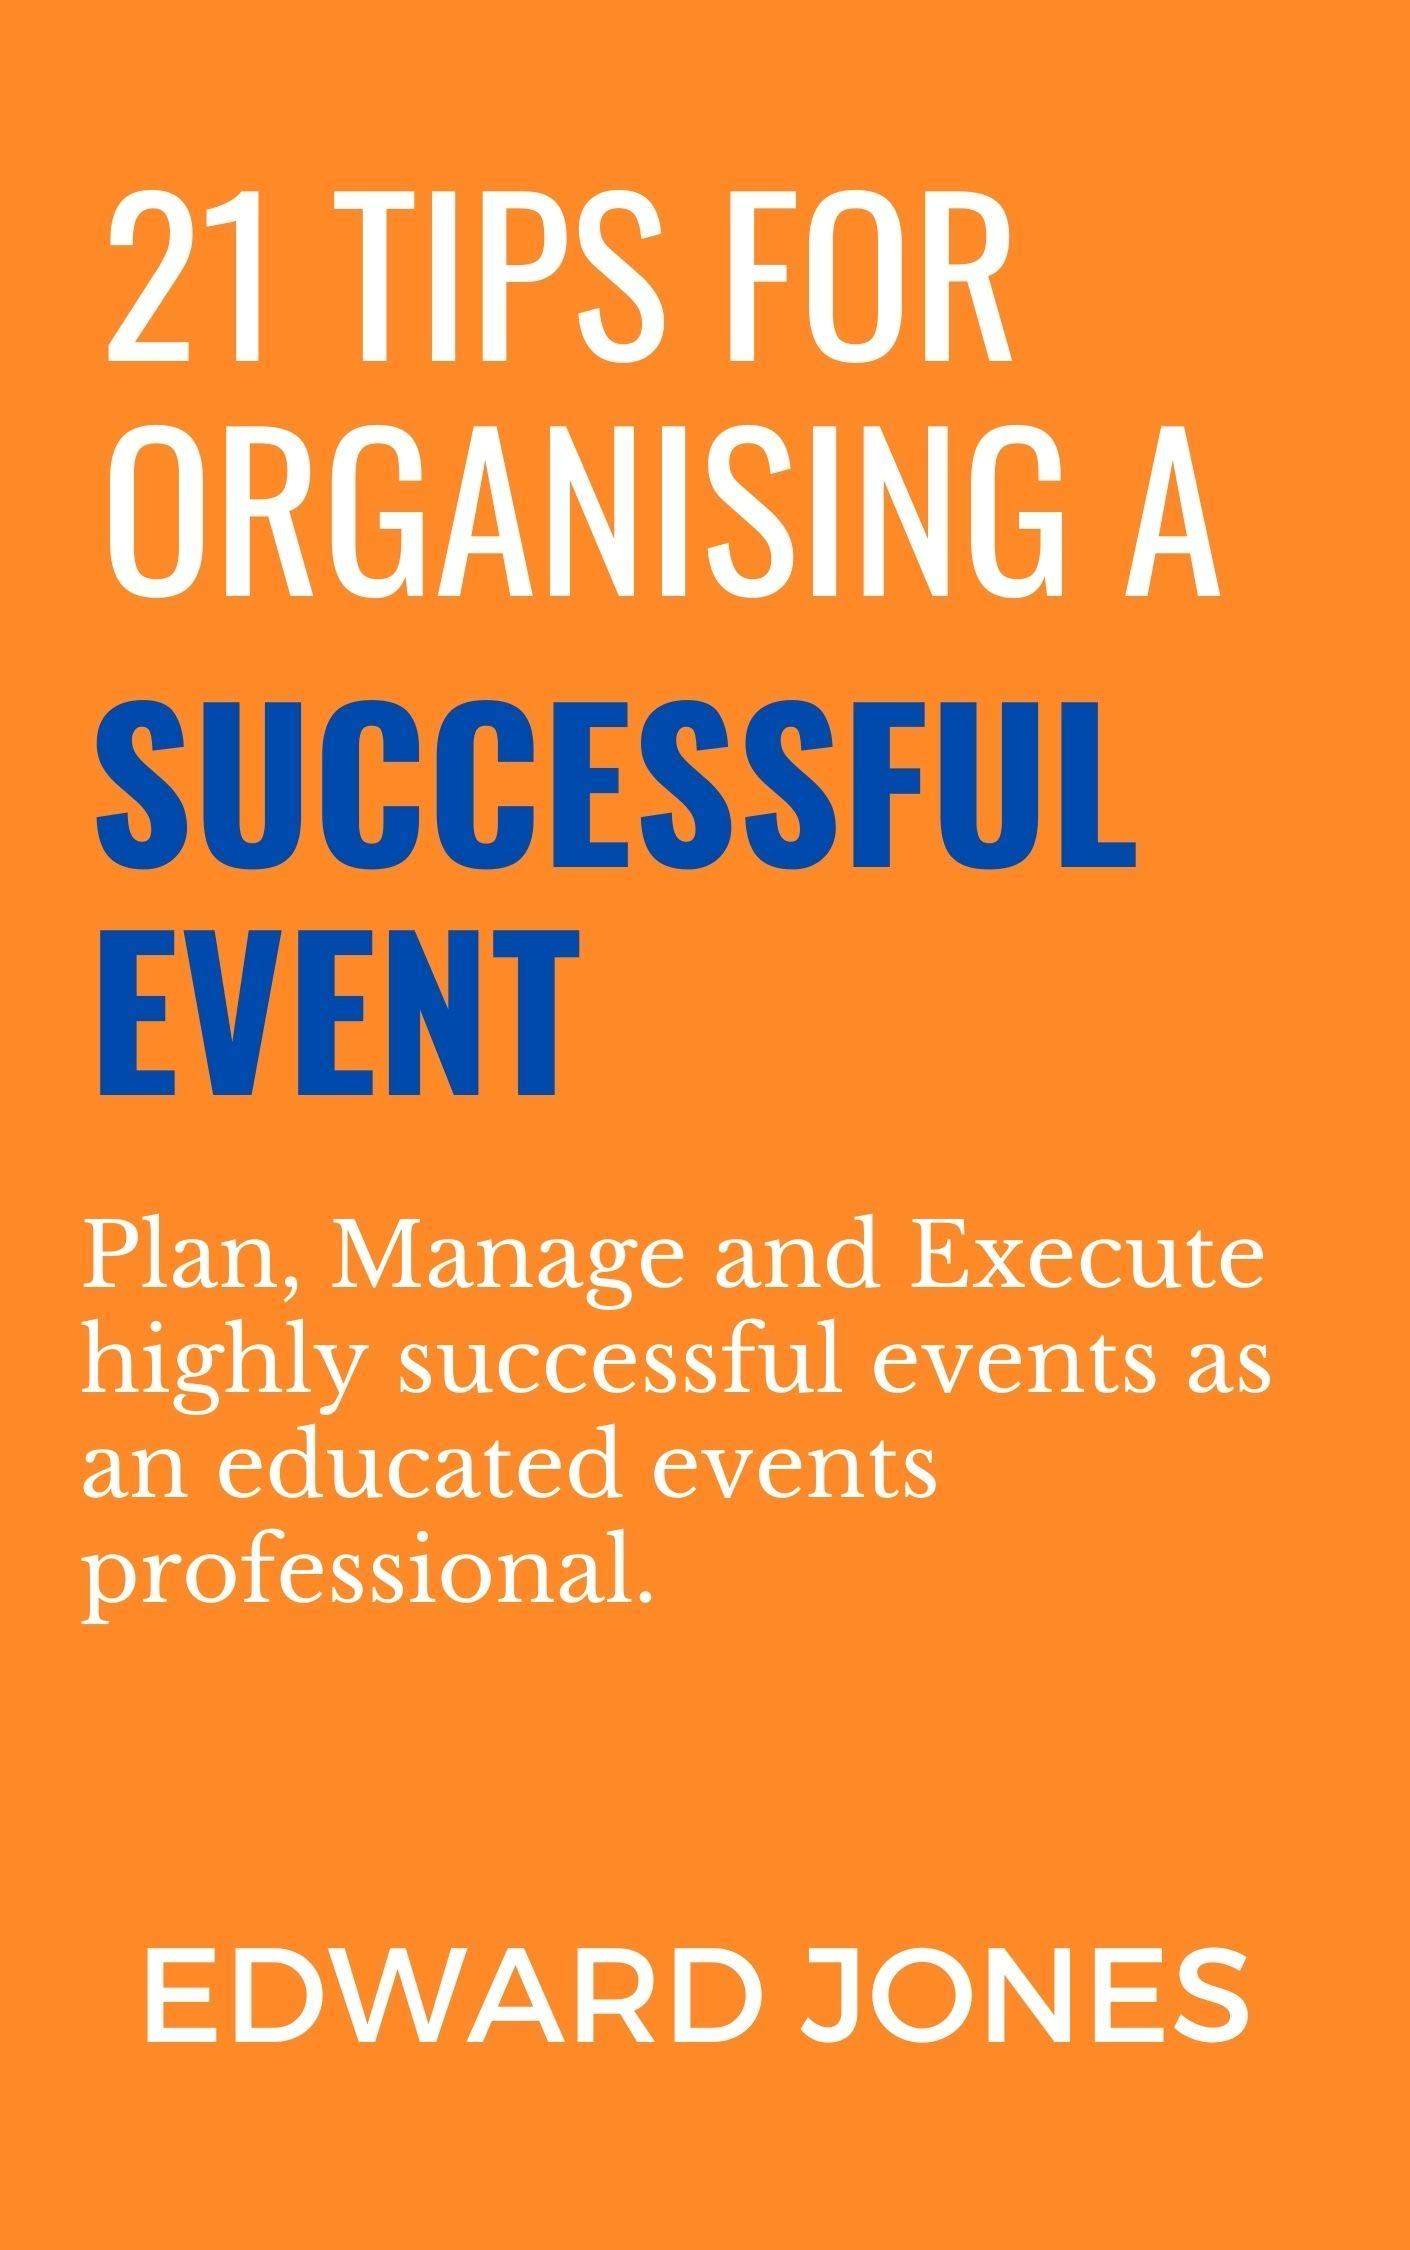 21 Tips for Organising a Successful Event: Plan, Manage and Execute highly successful events as an educated events professional.